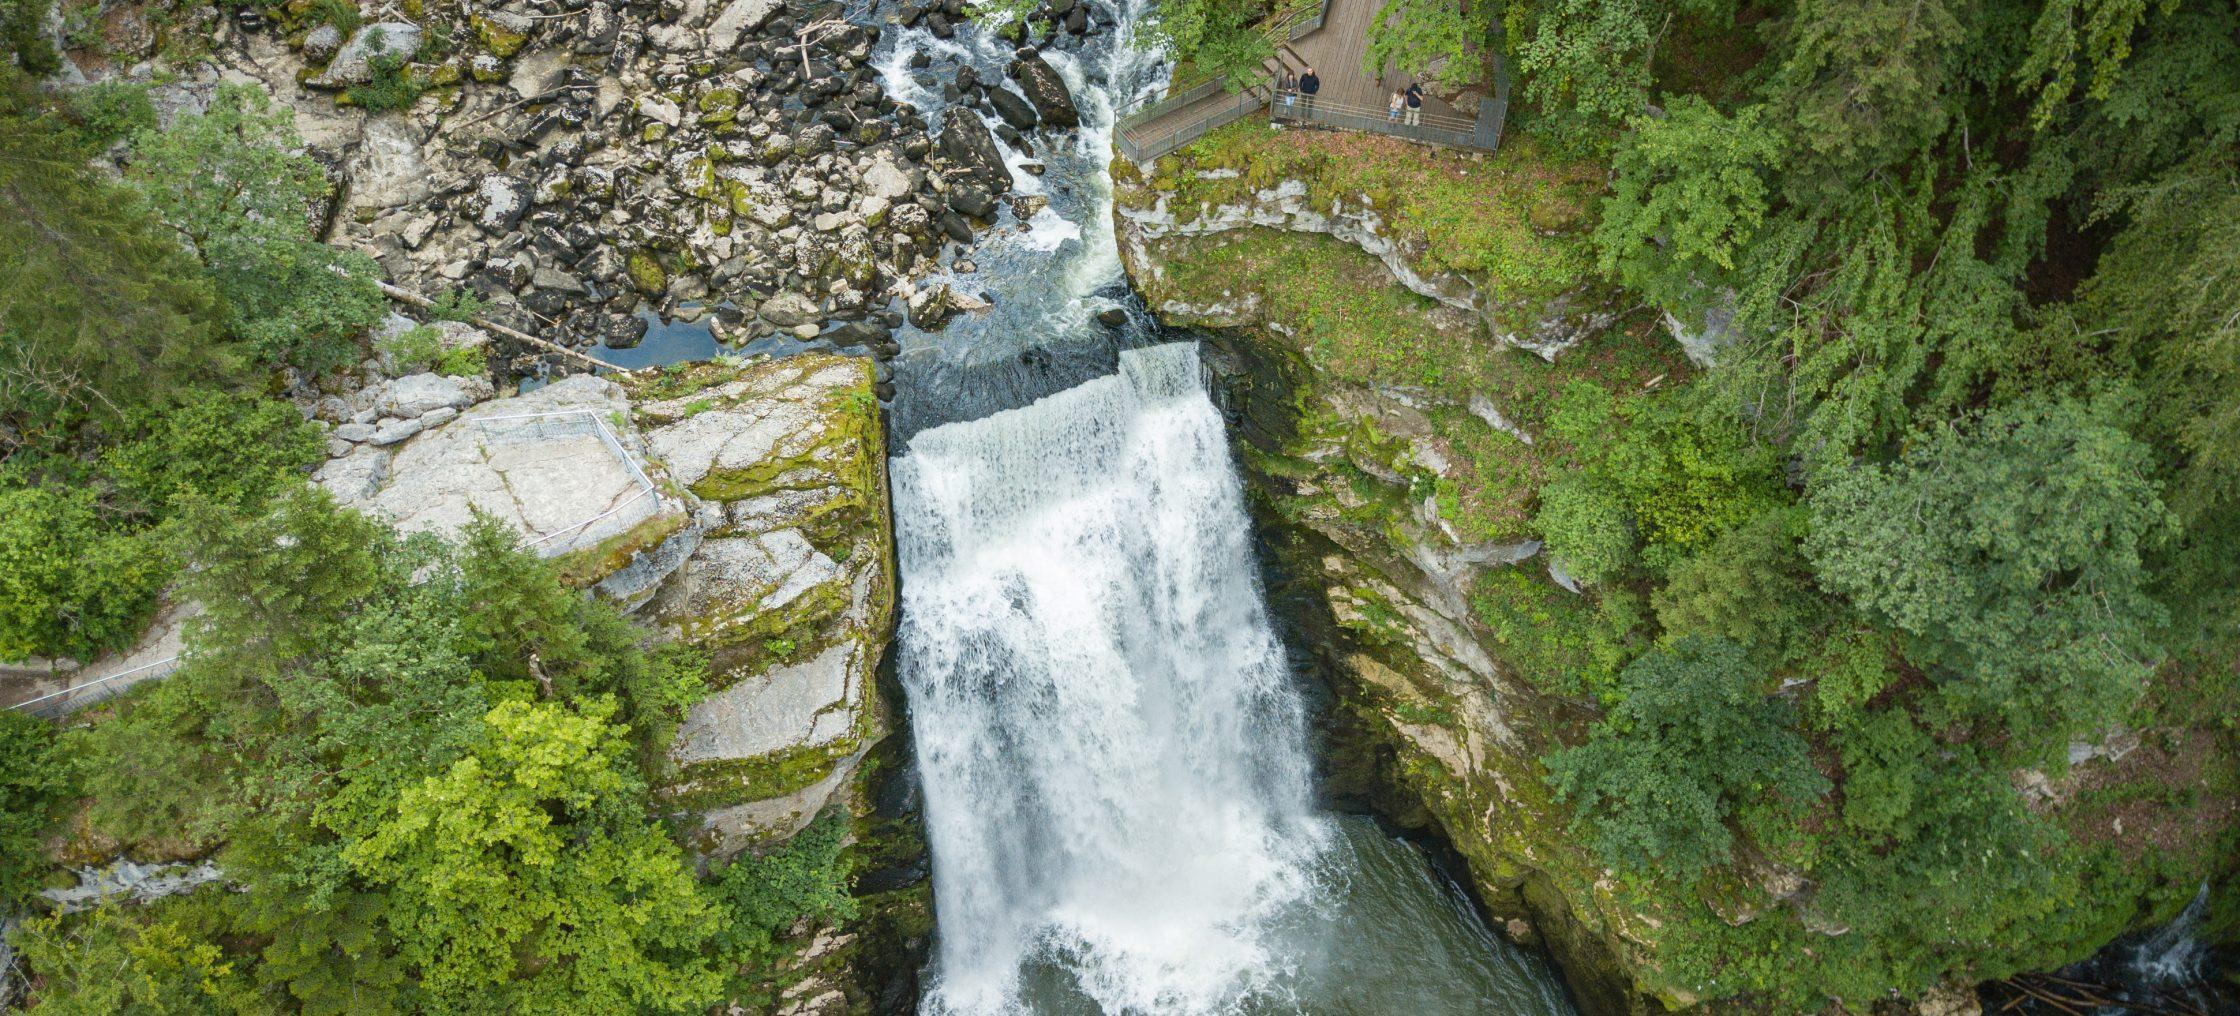 wasserfall doubs scaled